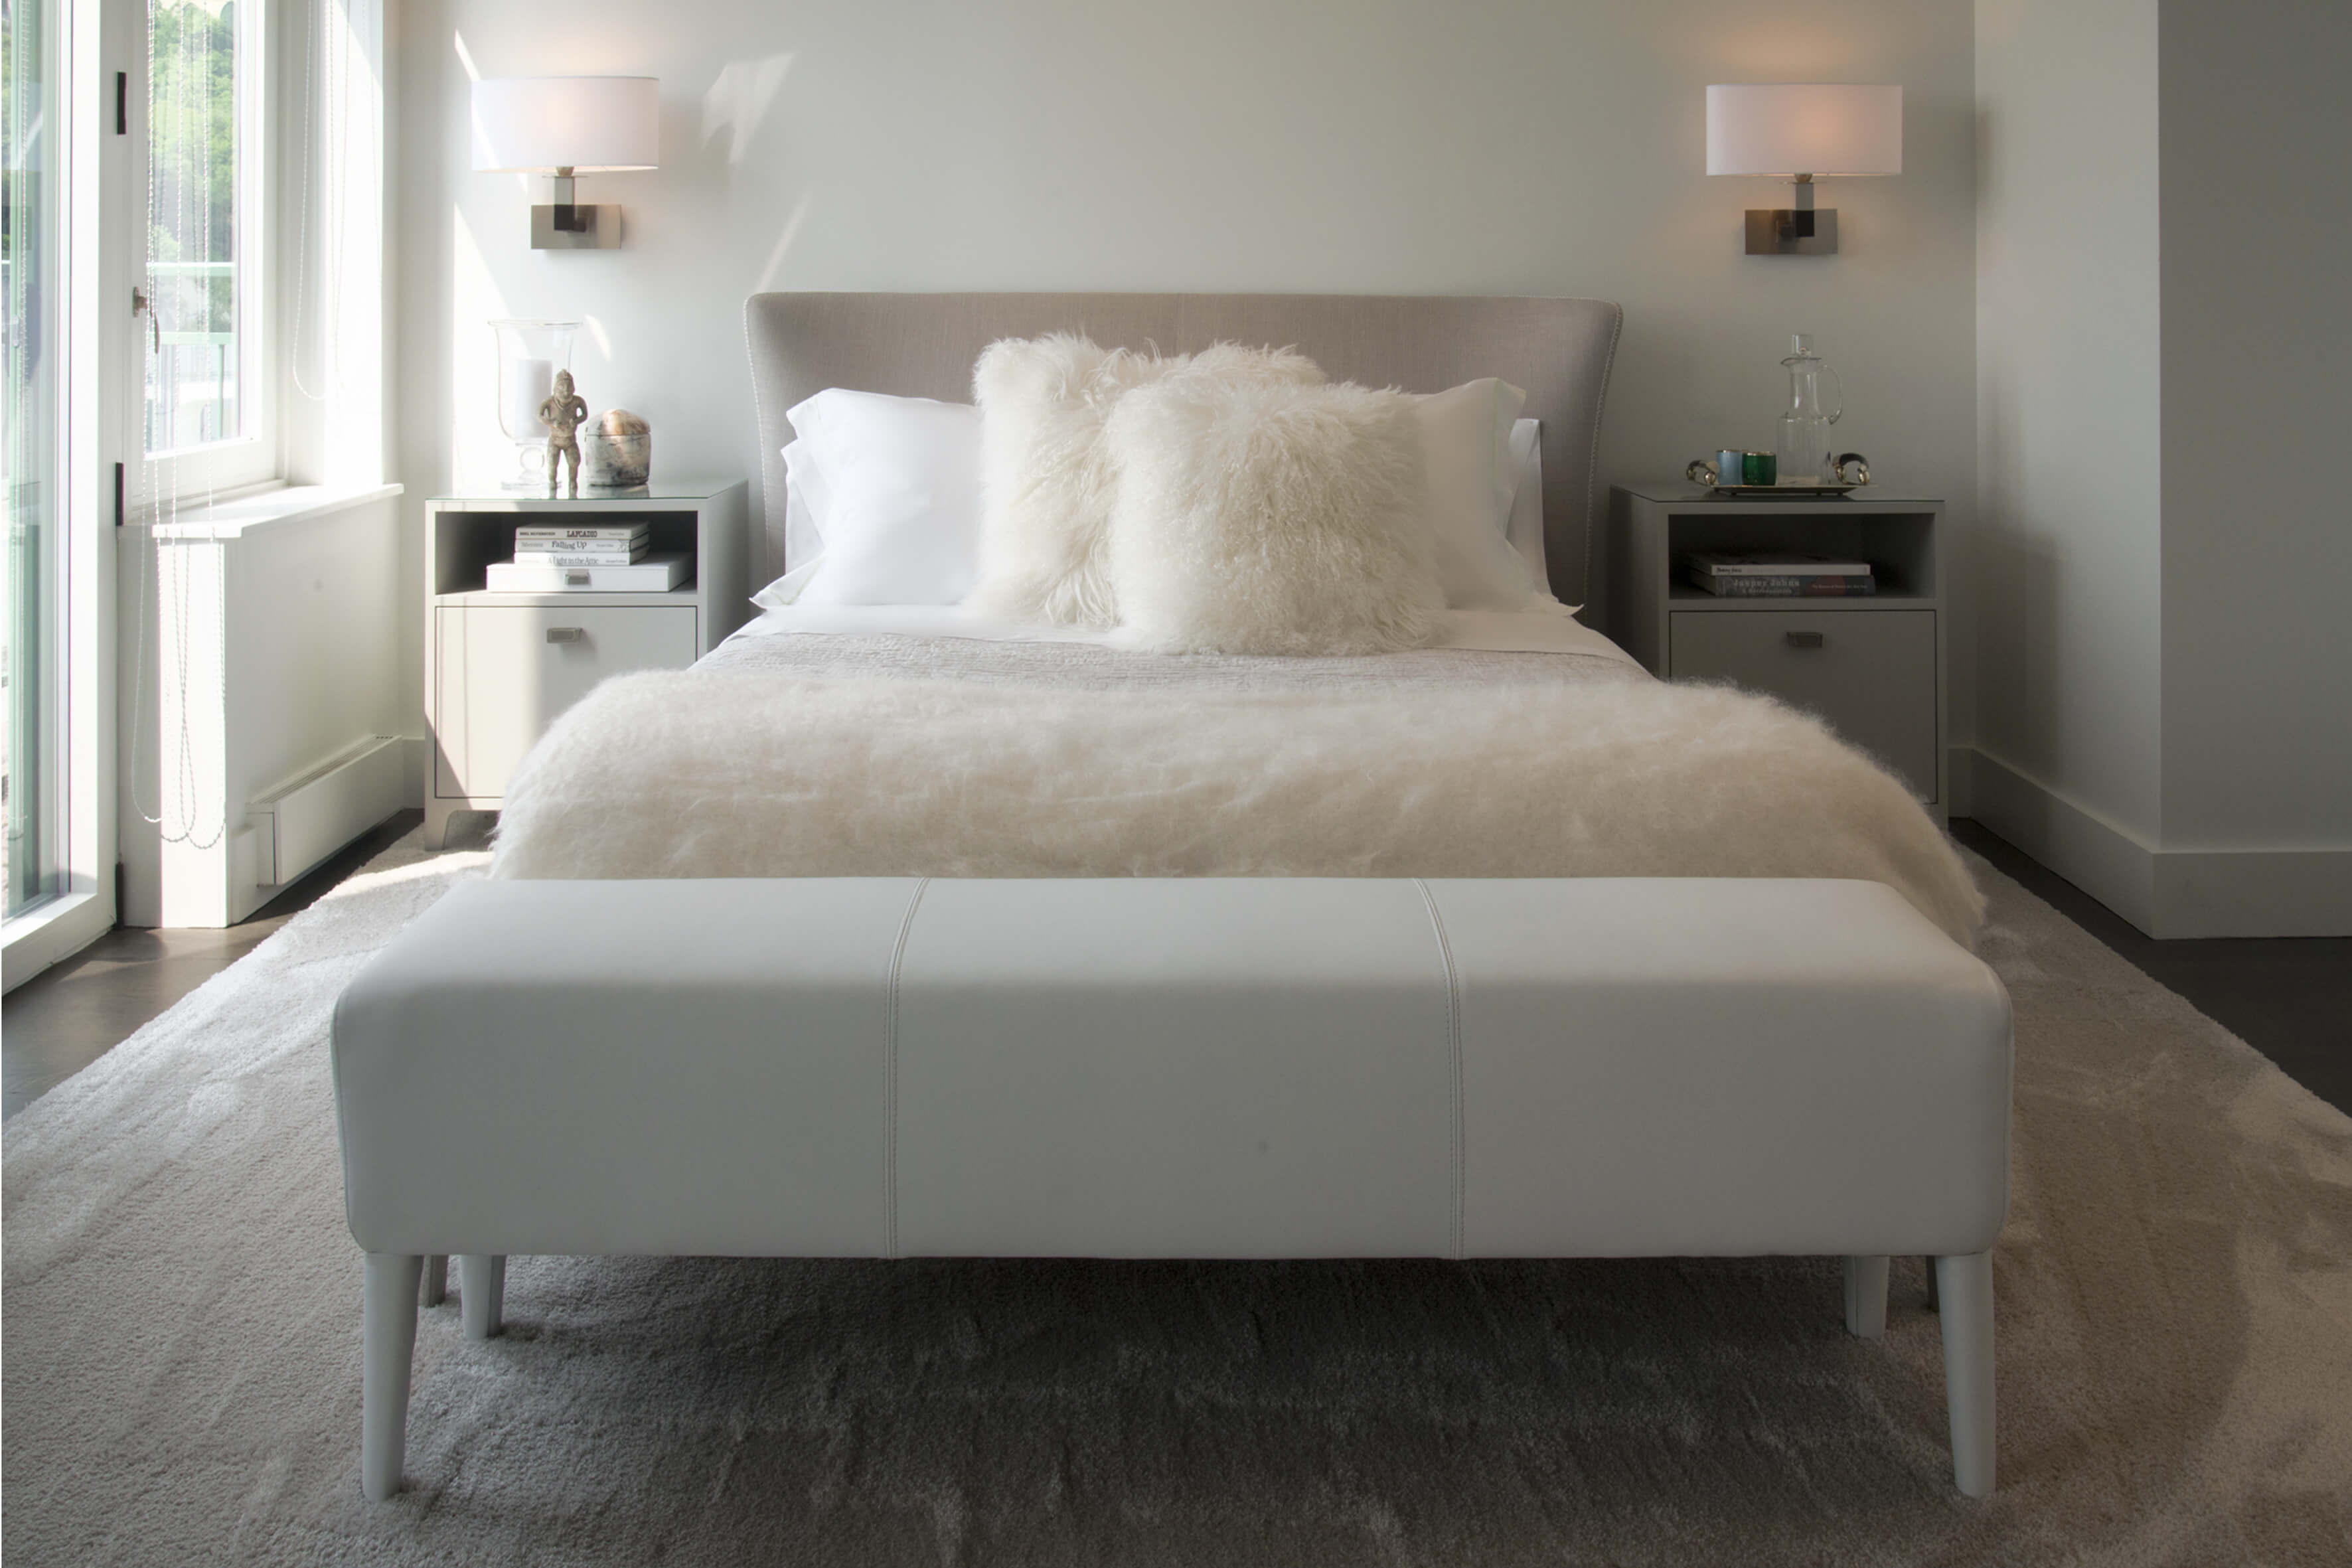 Plush, modern, and inviting bedroom designed by Cincinnati's premiere contemporary interior designer, RM Interiors.